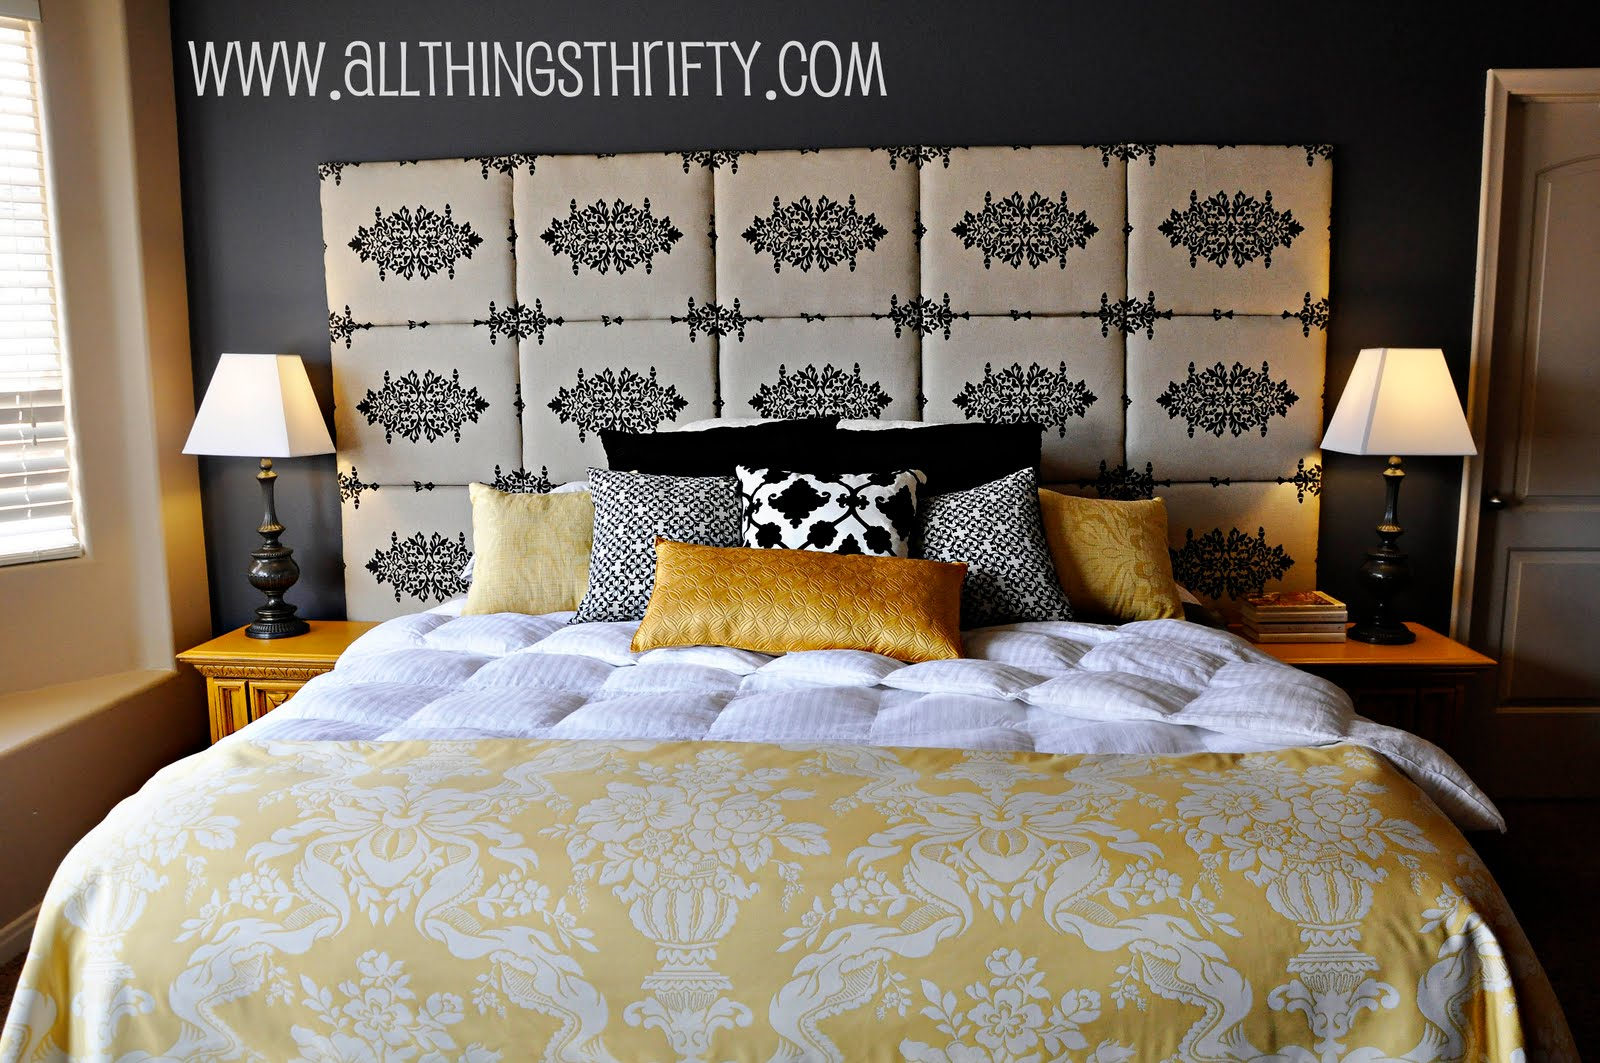 Do It Yourself Headboard Ideas Part - 38: All Things Thrifty